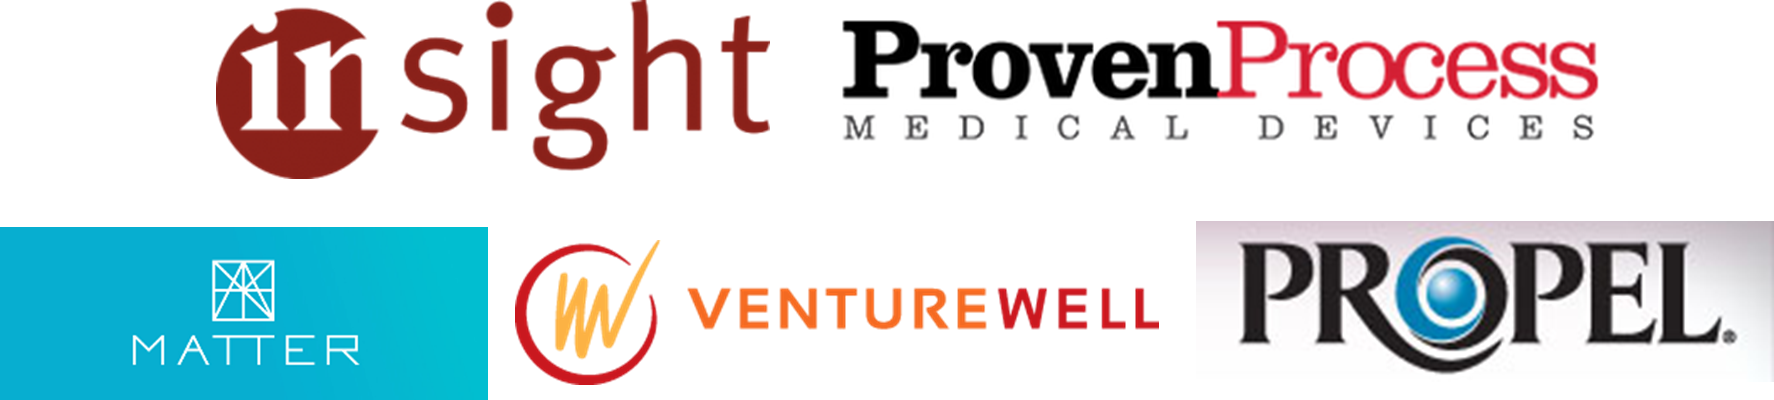 Insight Product Development; VentureWell; MATTER; Chicago Innovation Mentors; PROPEL;